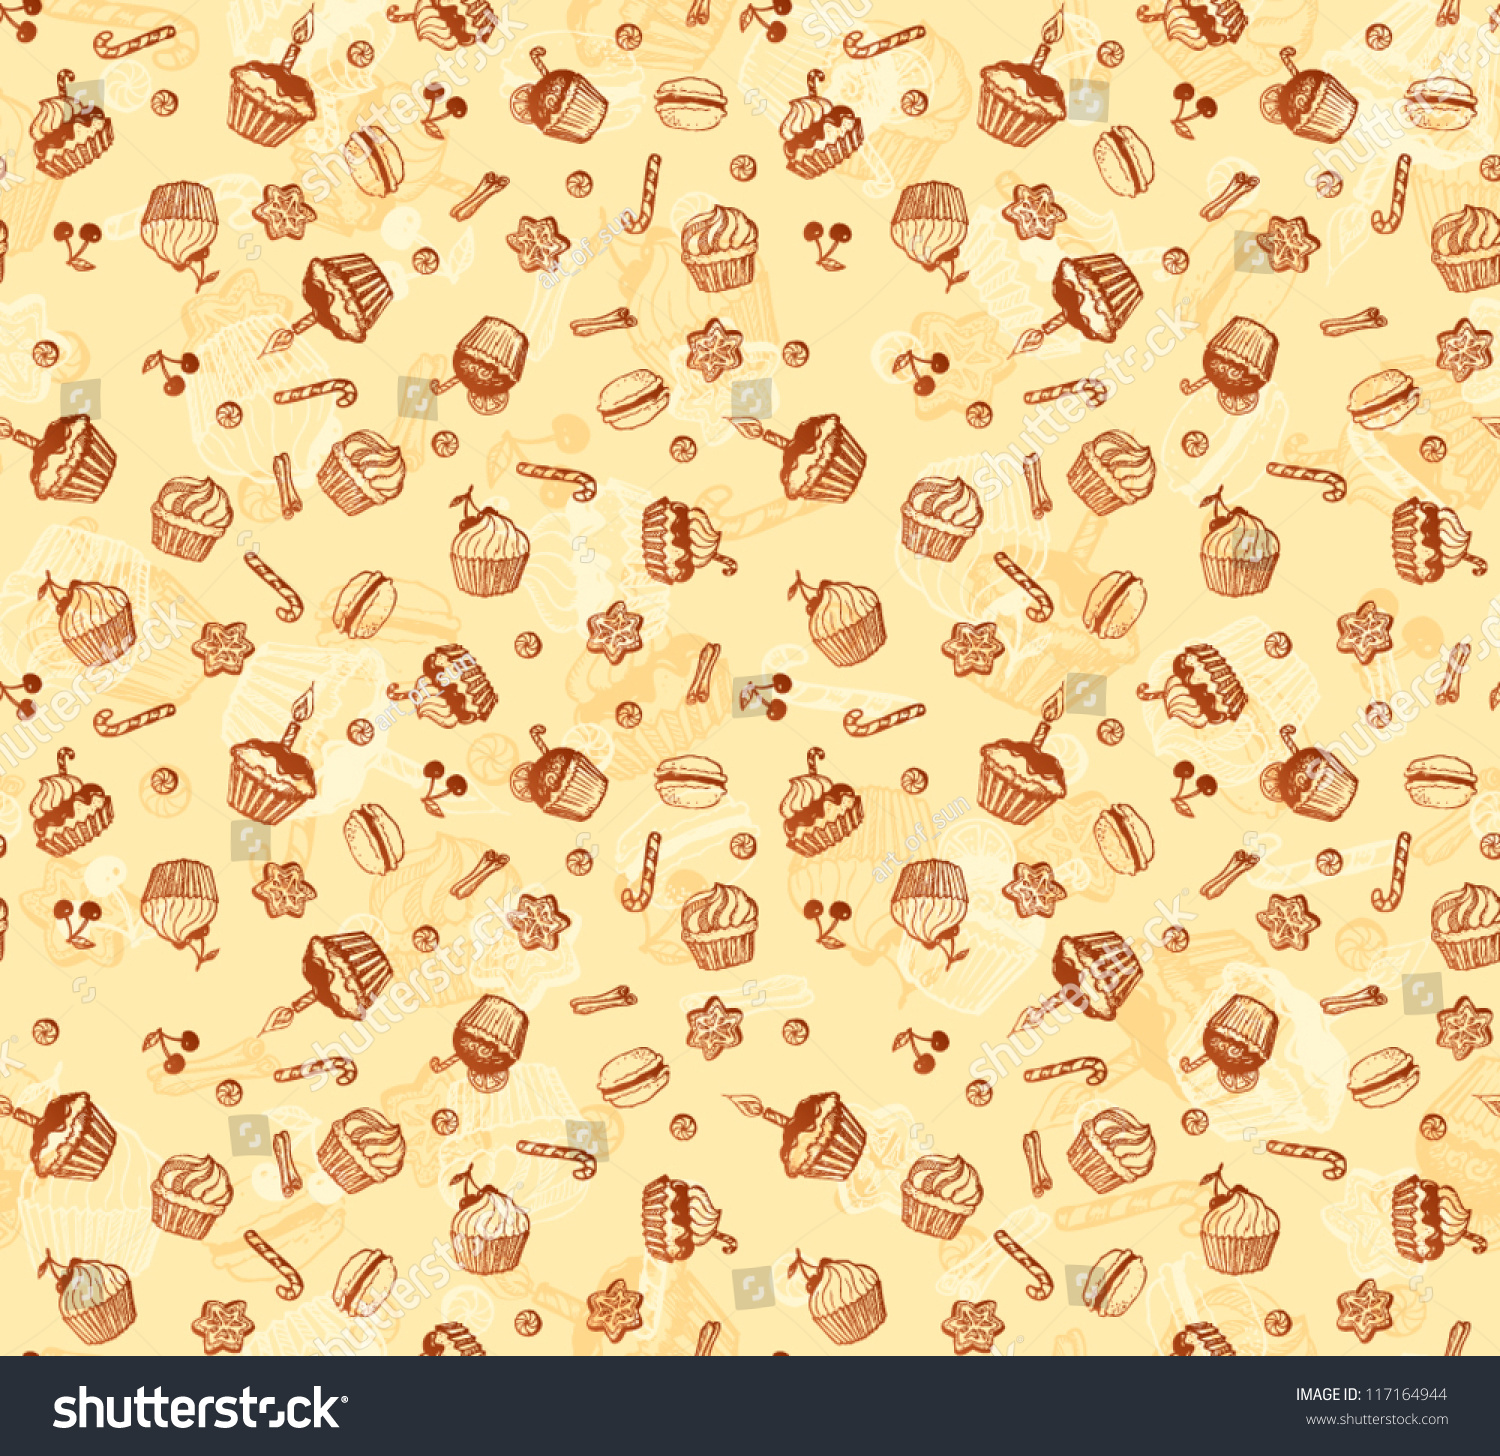 seamless doodle coffee pattern - photo #8